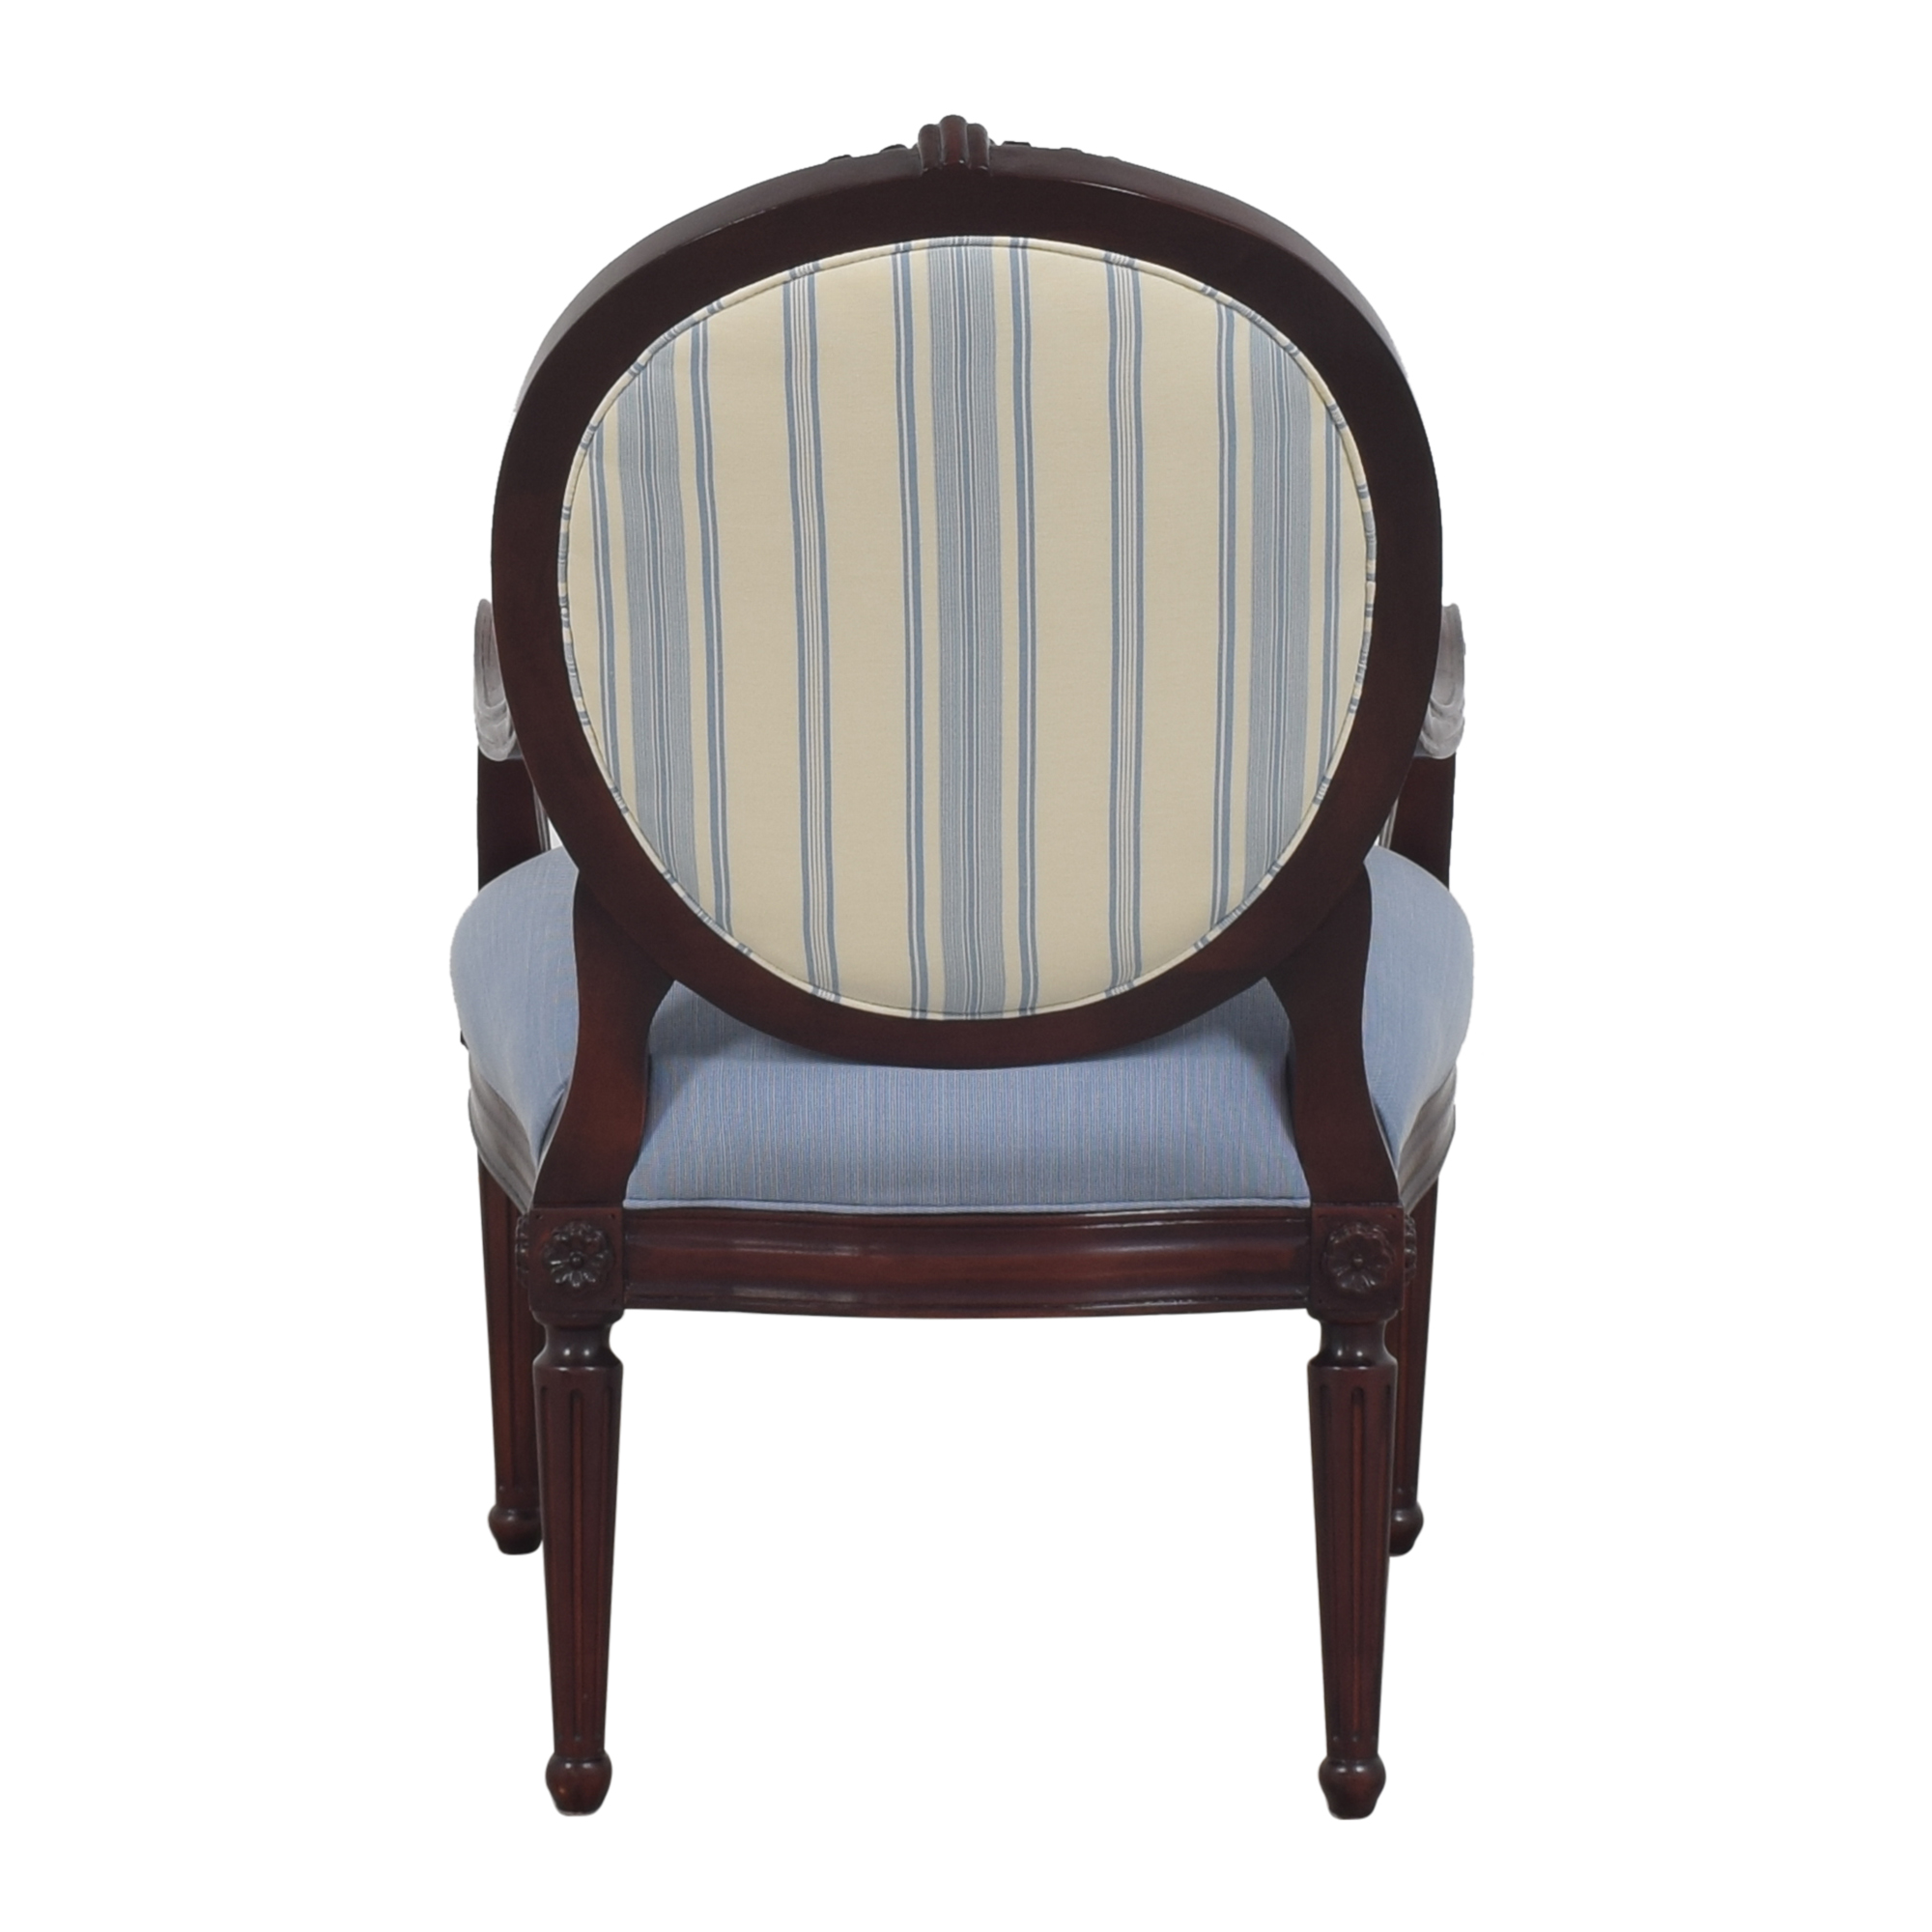 Hancock and Moore Hancock and Moore Circle Back Accent Chair ma